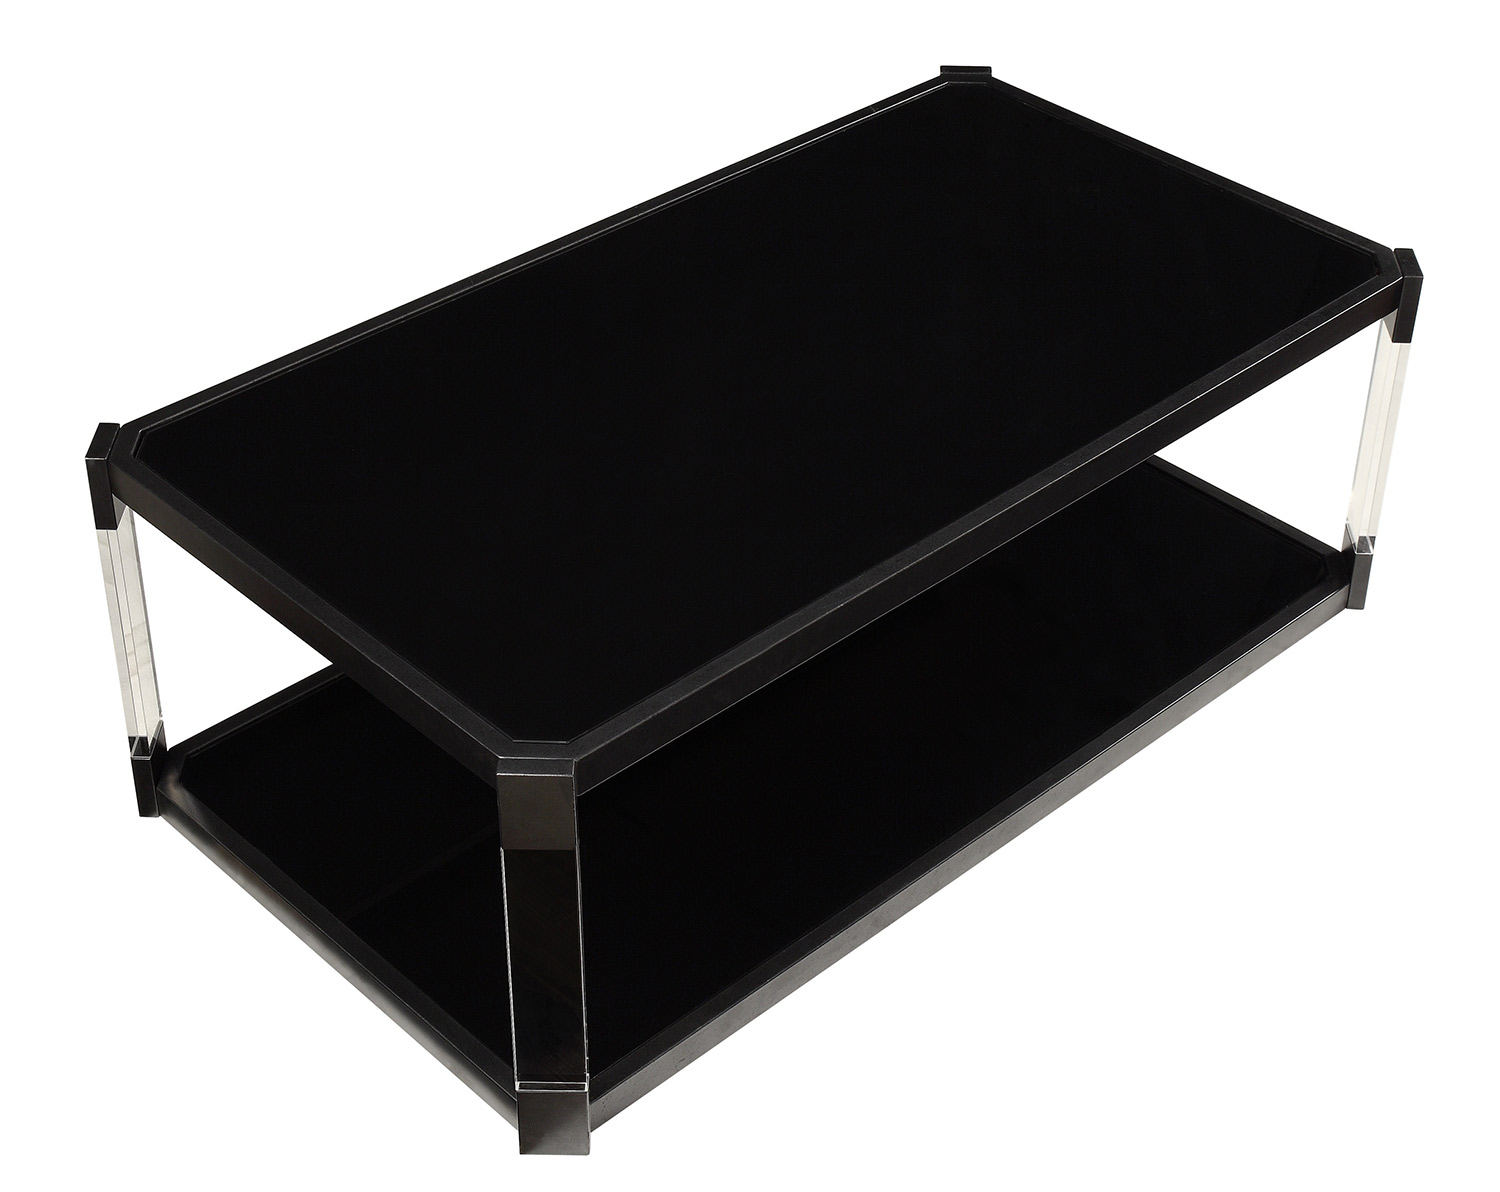 Homelegance Mehta Cocktail/Coffee Table with Casters - Black Glass